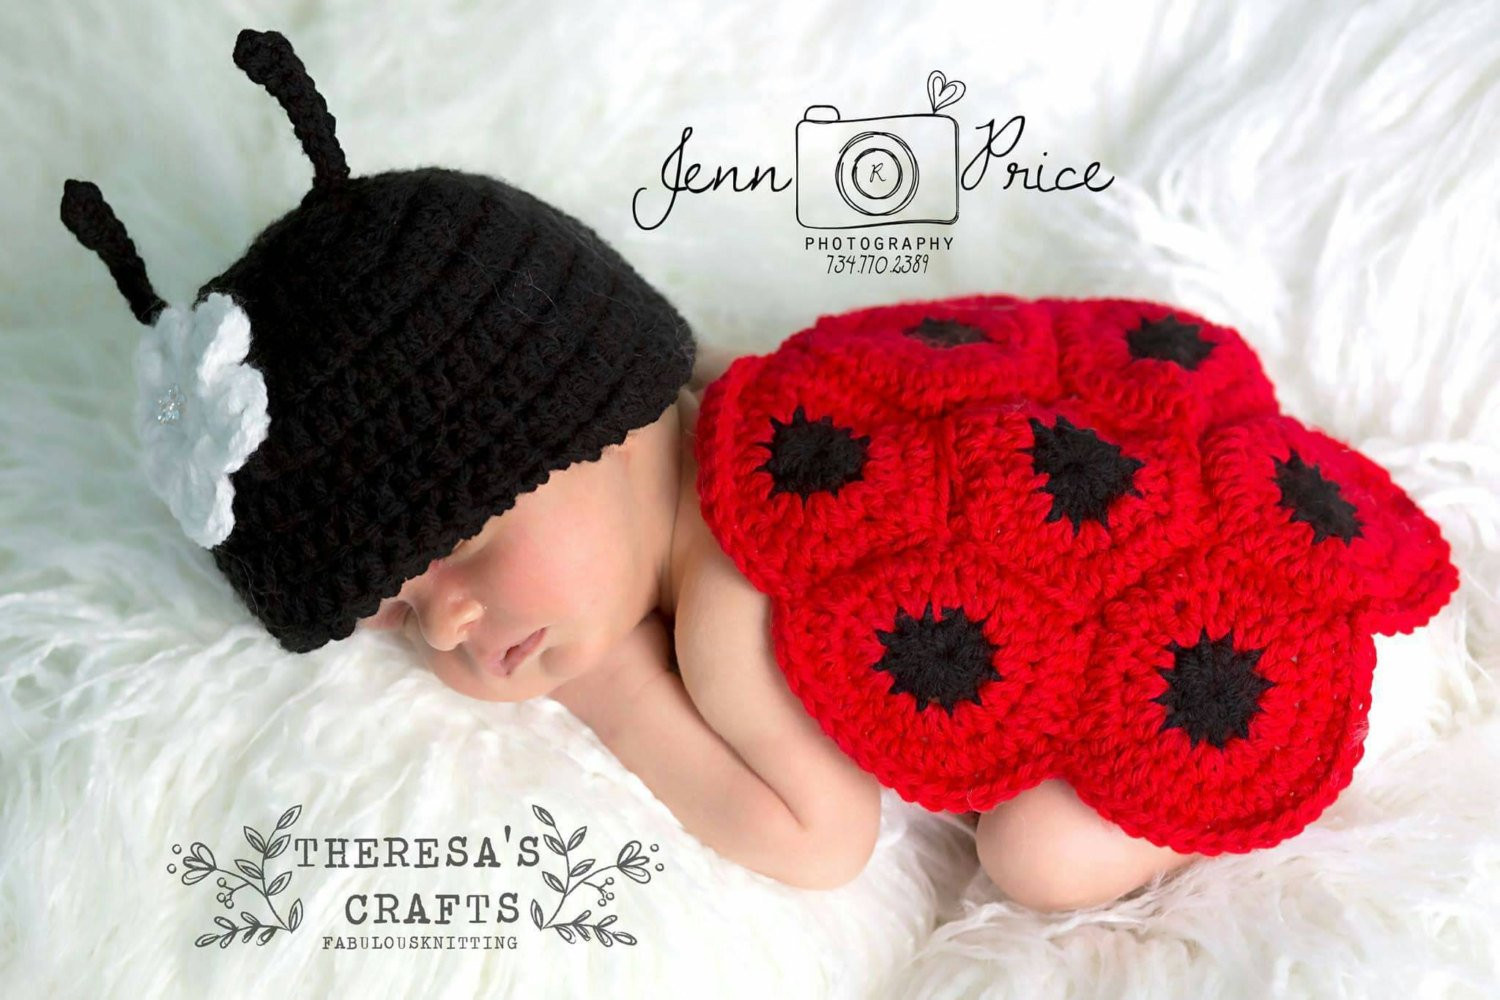 Crochet Outfits Unique Ladybug Baby Outfit Crochet Ladybug Baby Outfit Baby Photo Of Great 42 Ideas Crochet Outfits